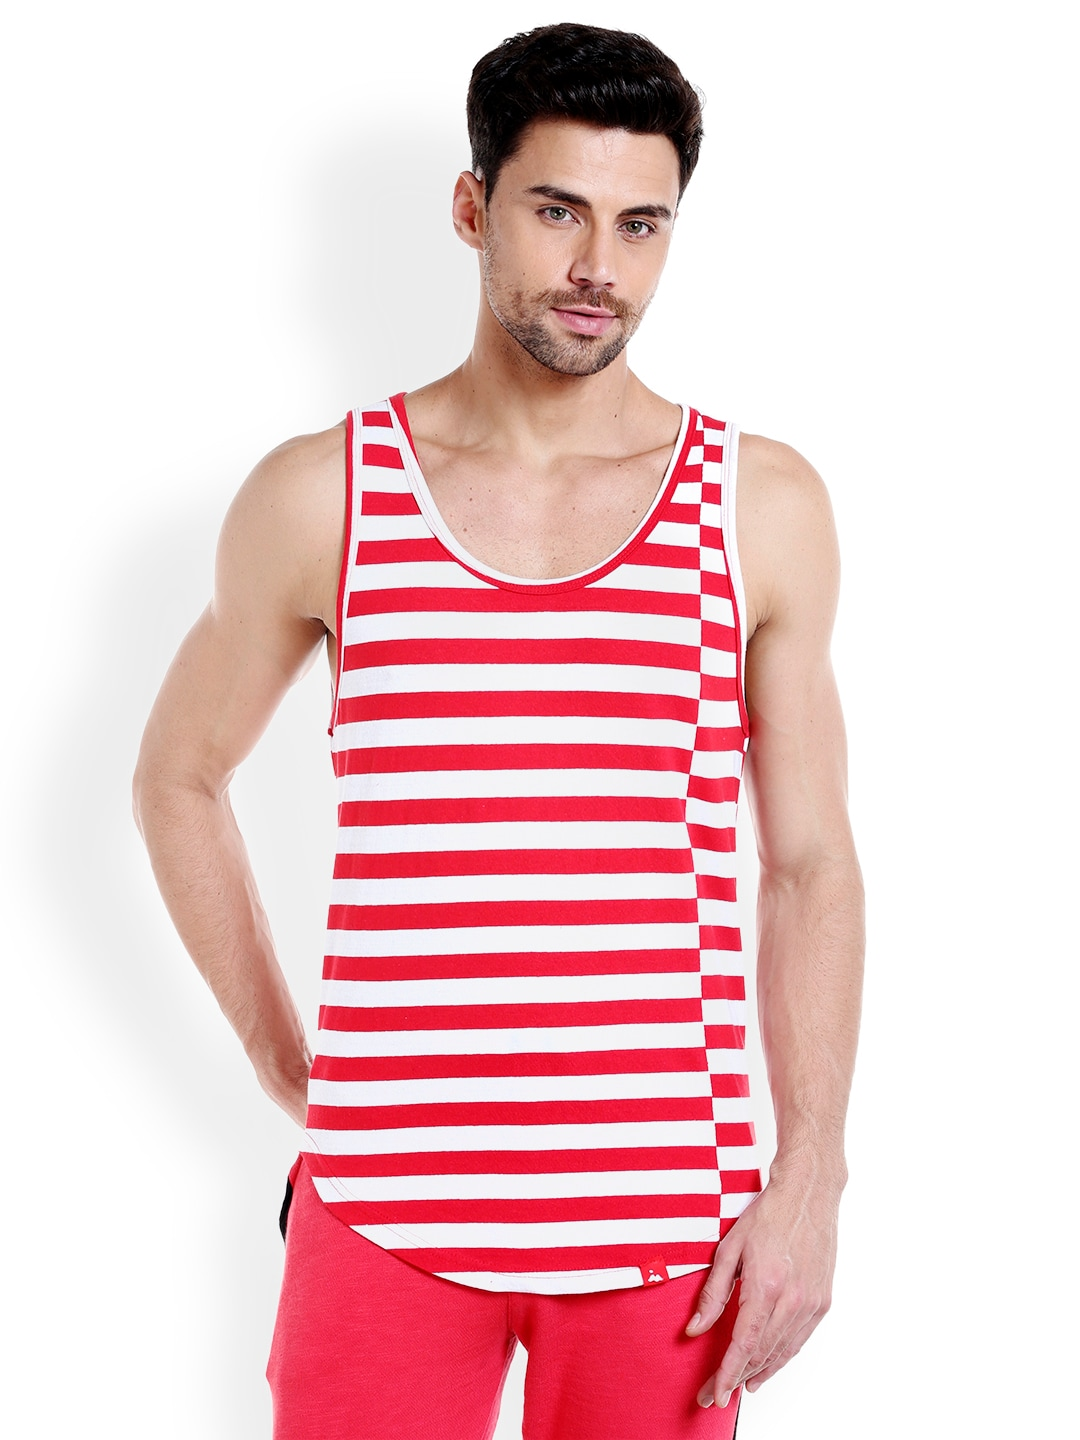 Masculino Latino Men Red & White Striped T-shirt MLF4030-B image